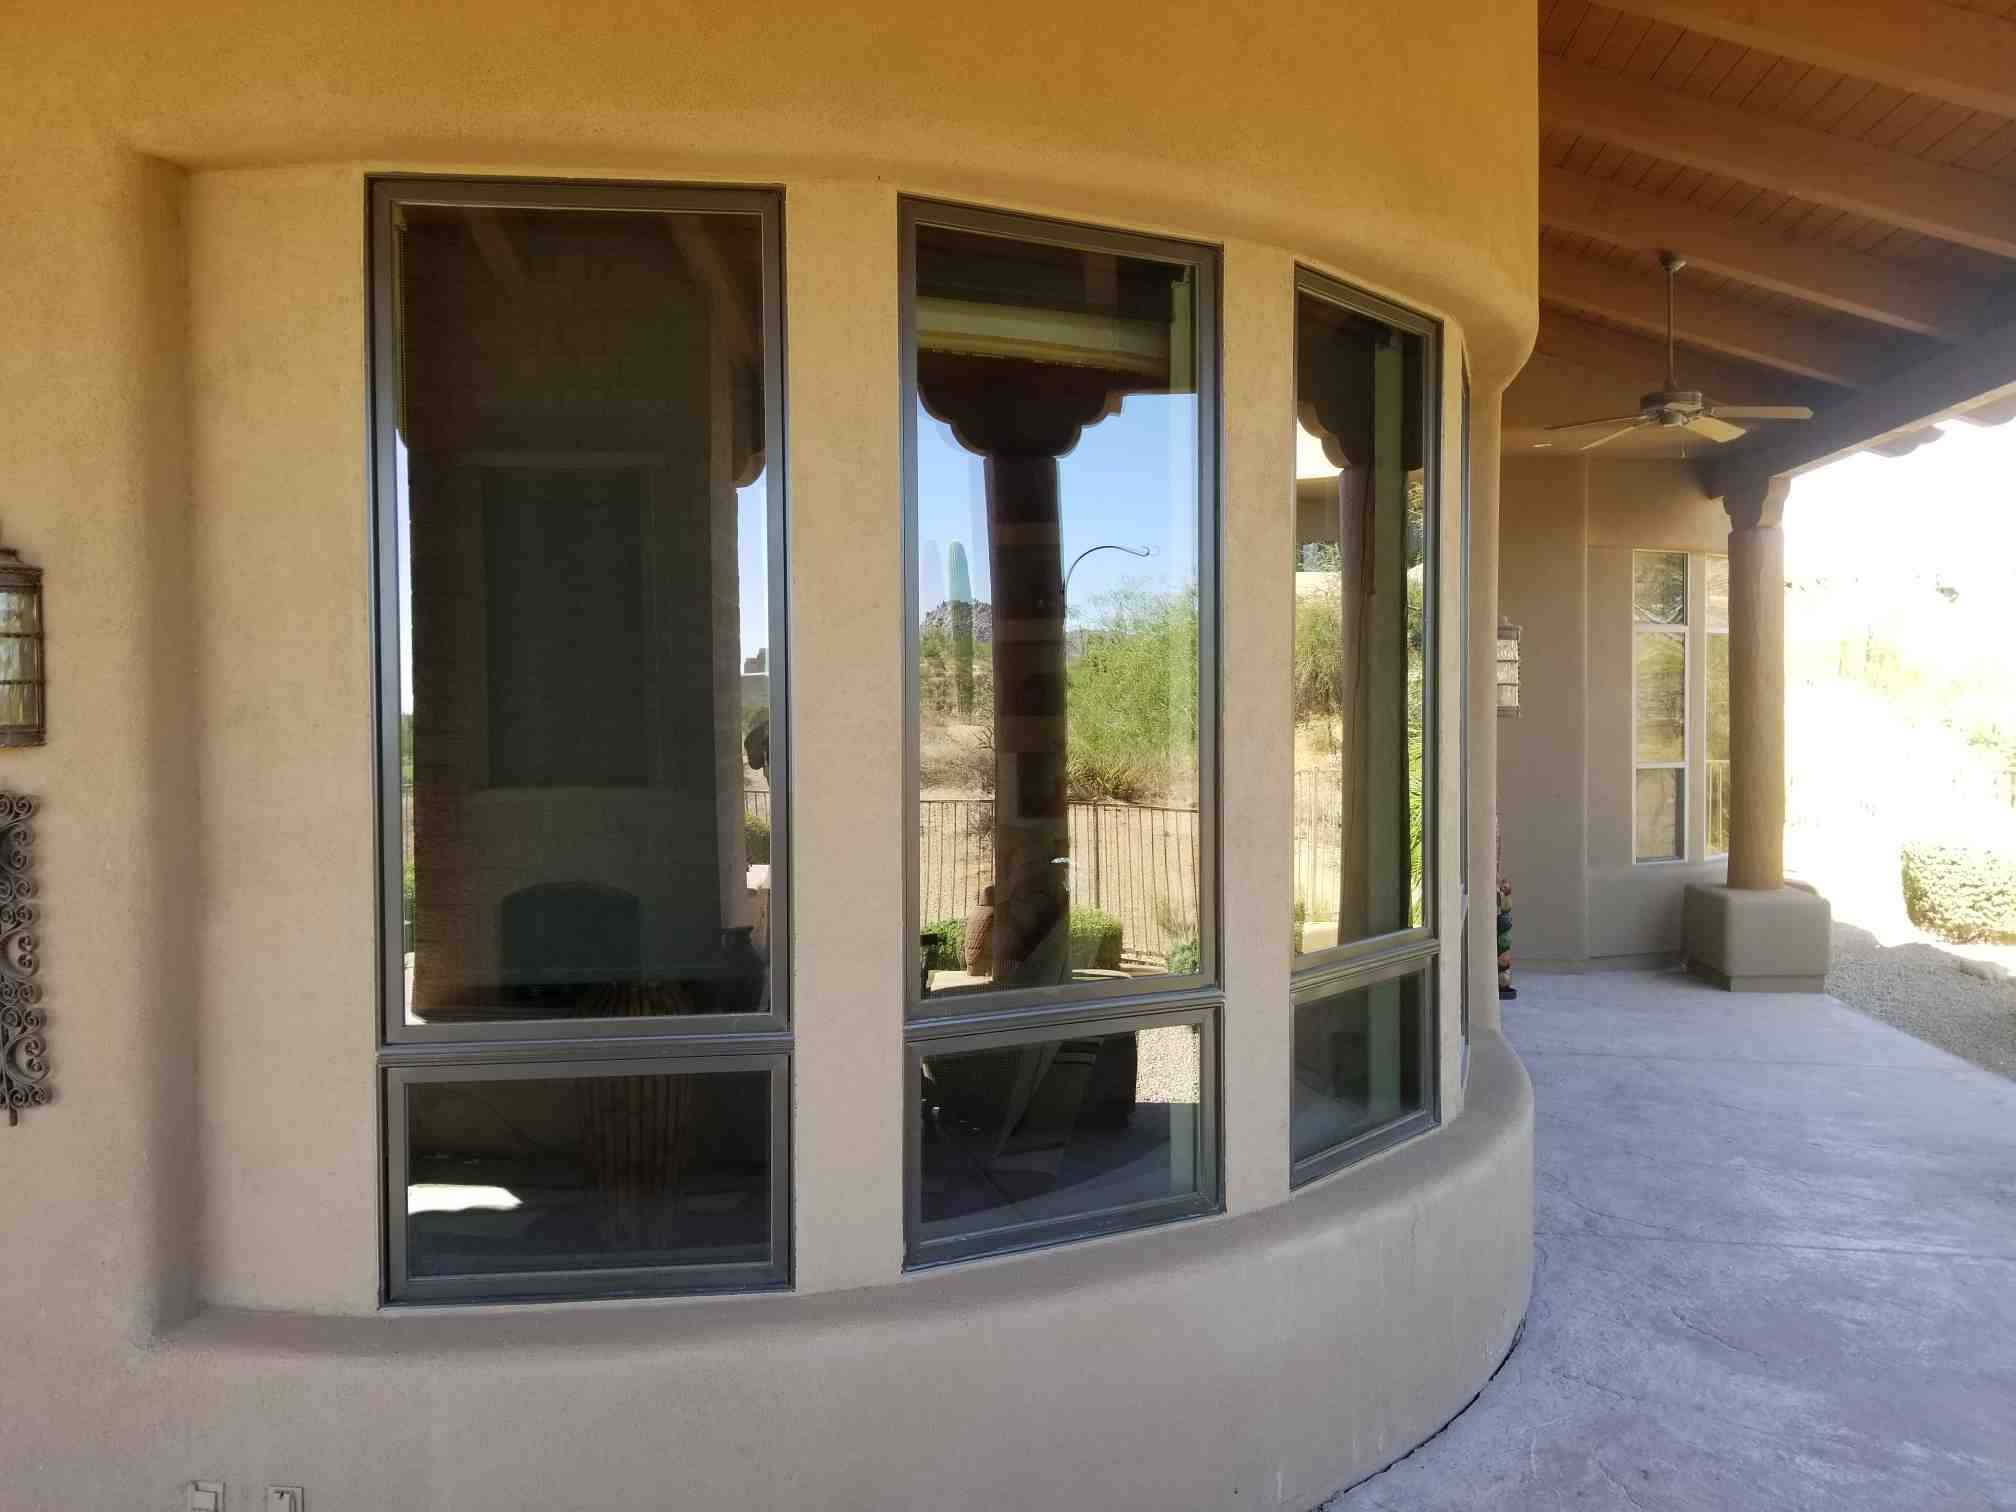 Arizona Window and Door in Scottsdale and Tucson showing wood windows on curve of house